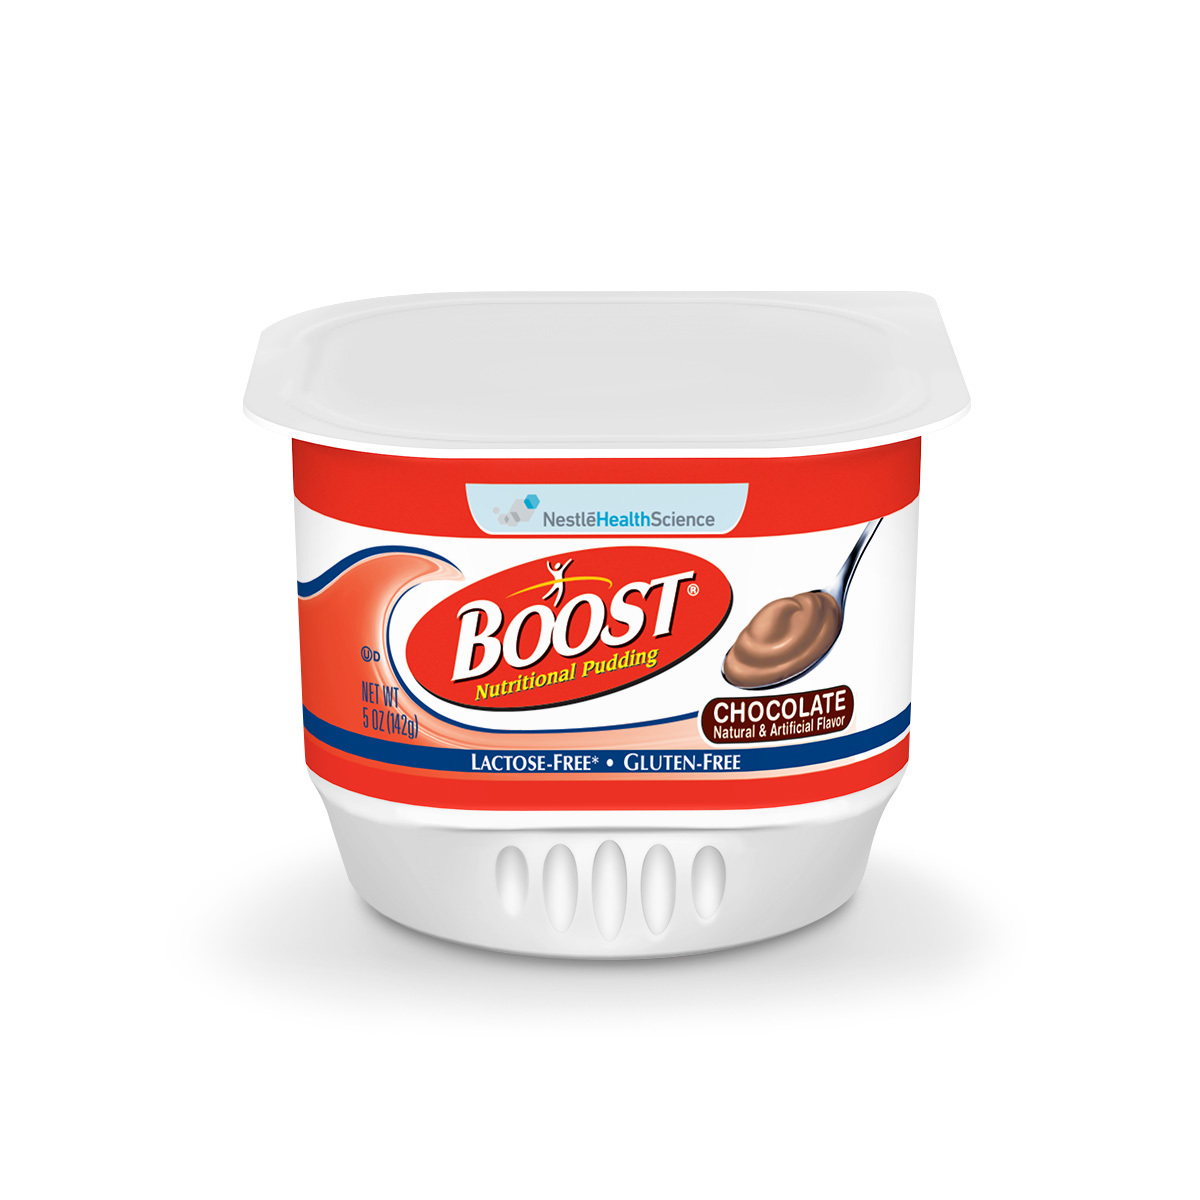 Boost Nutritional Pudding, Chocolate, 5 oz Cups - Case of 48